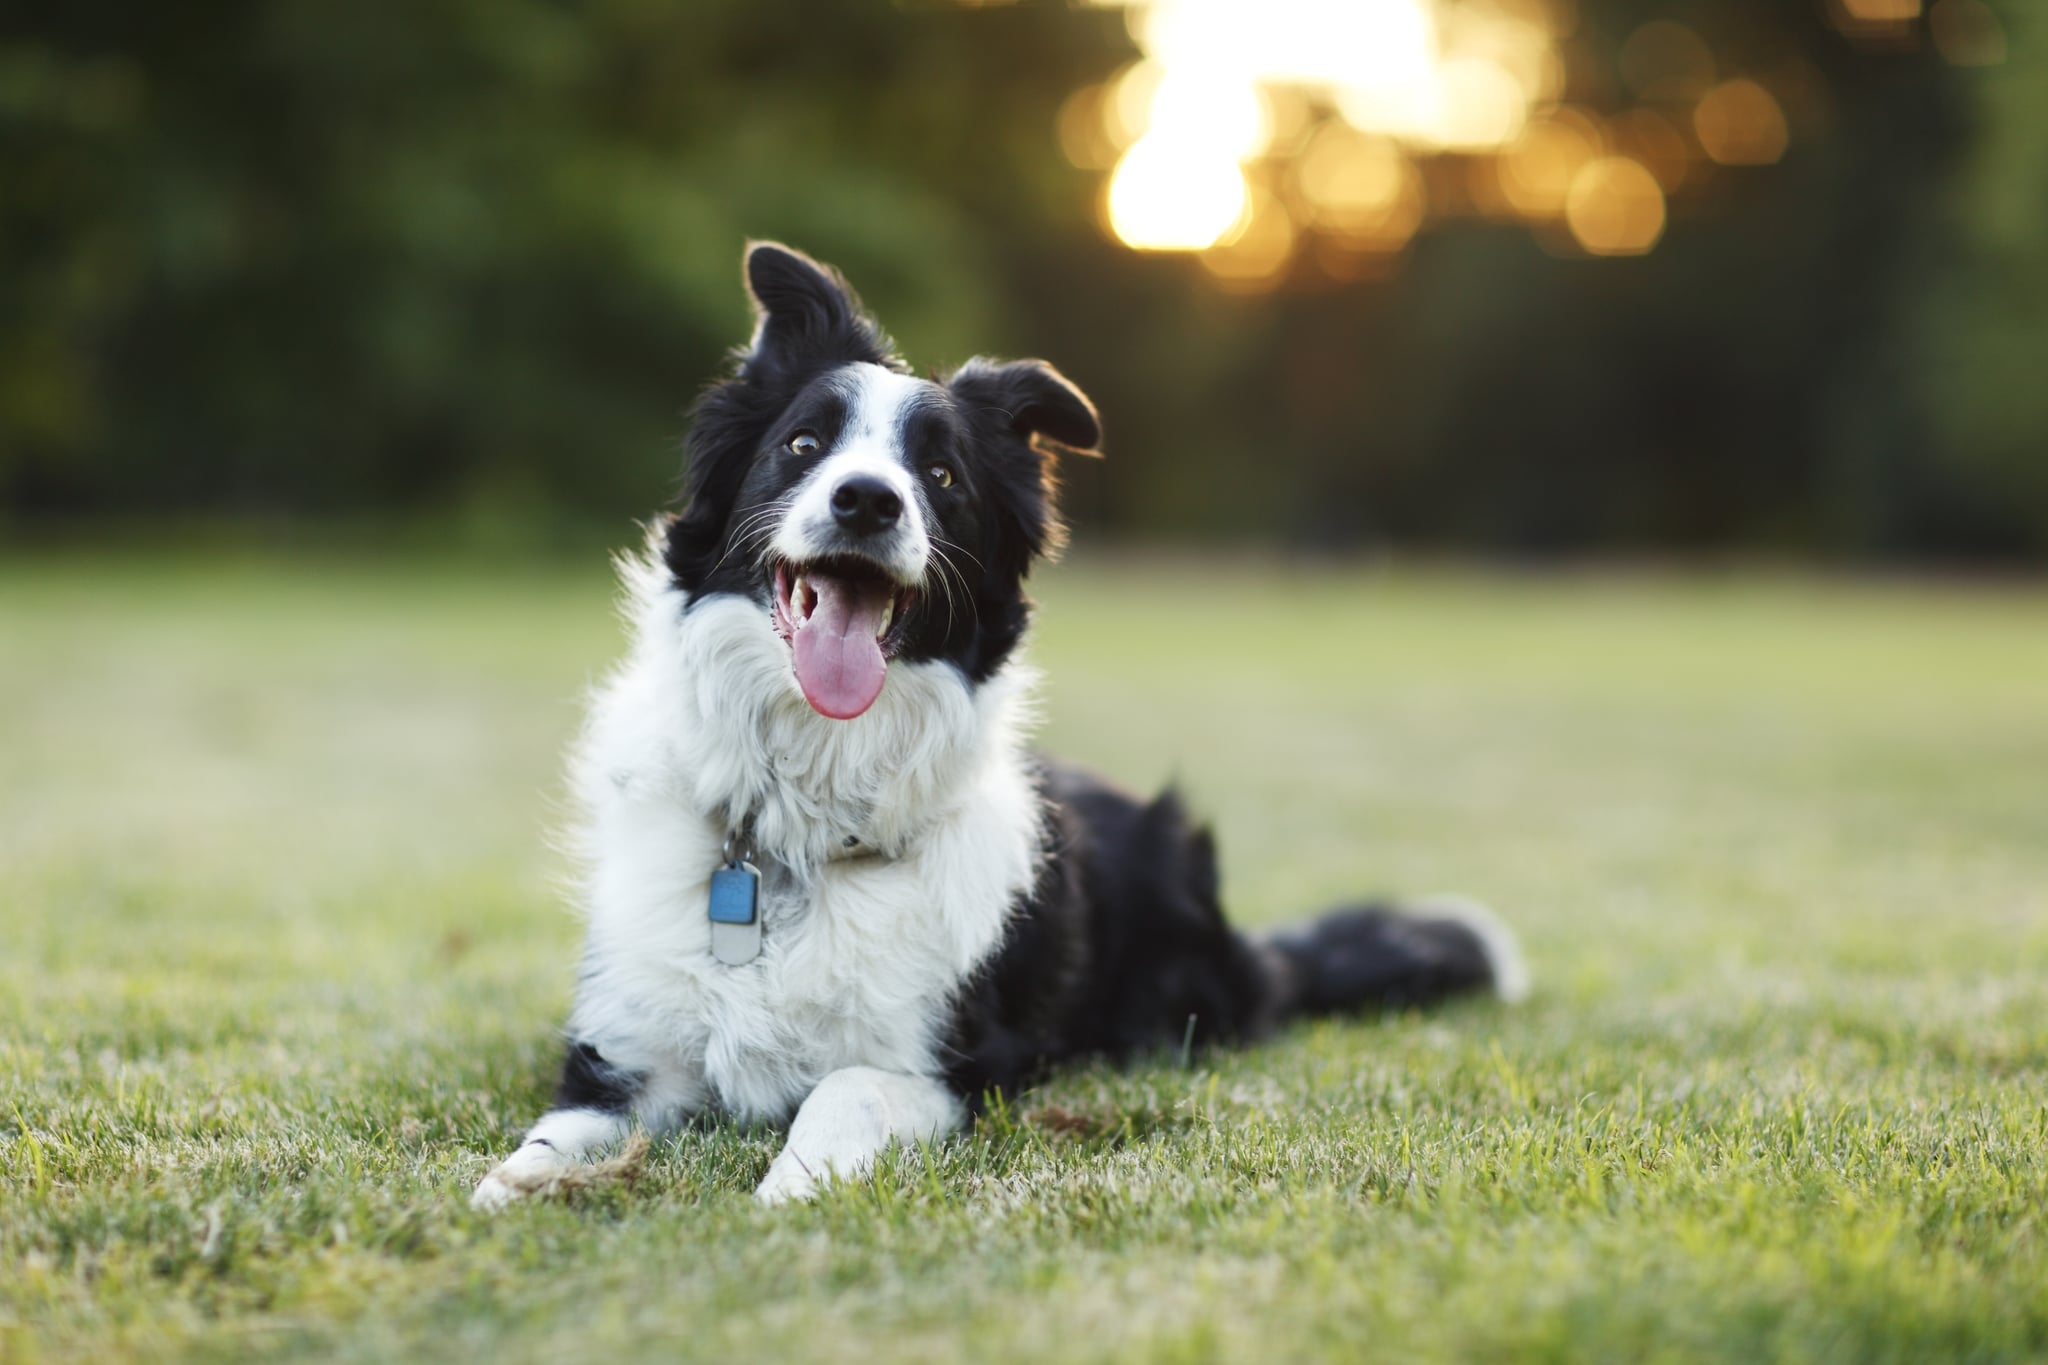 A happy border collie dog lays down on grass with its tongue out outdoors.